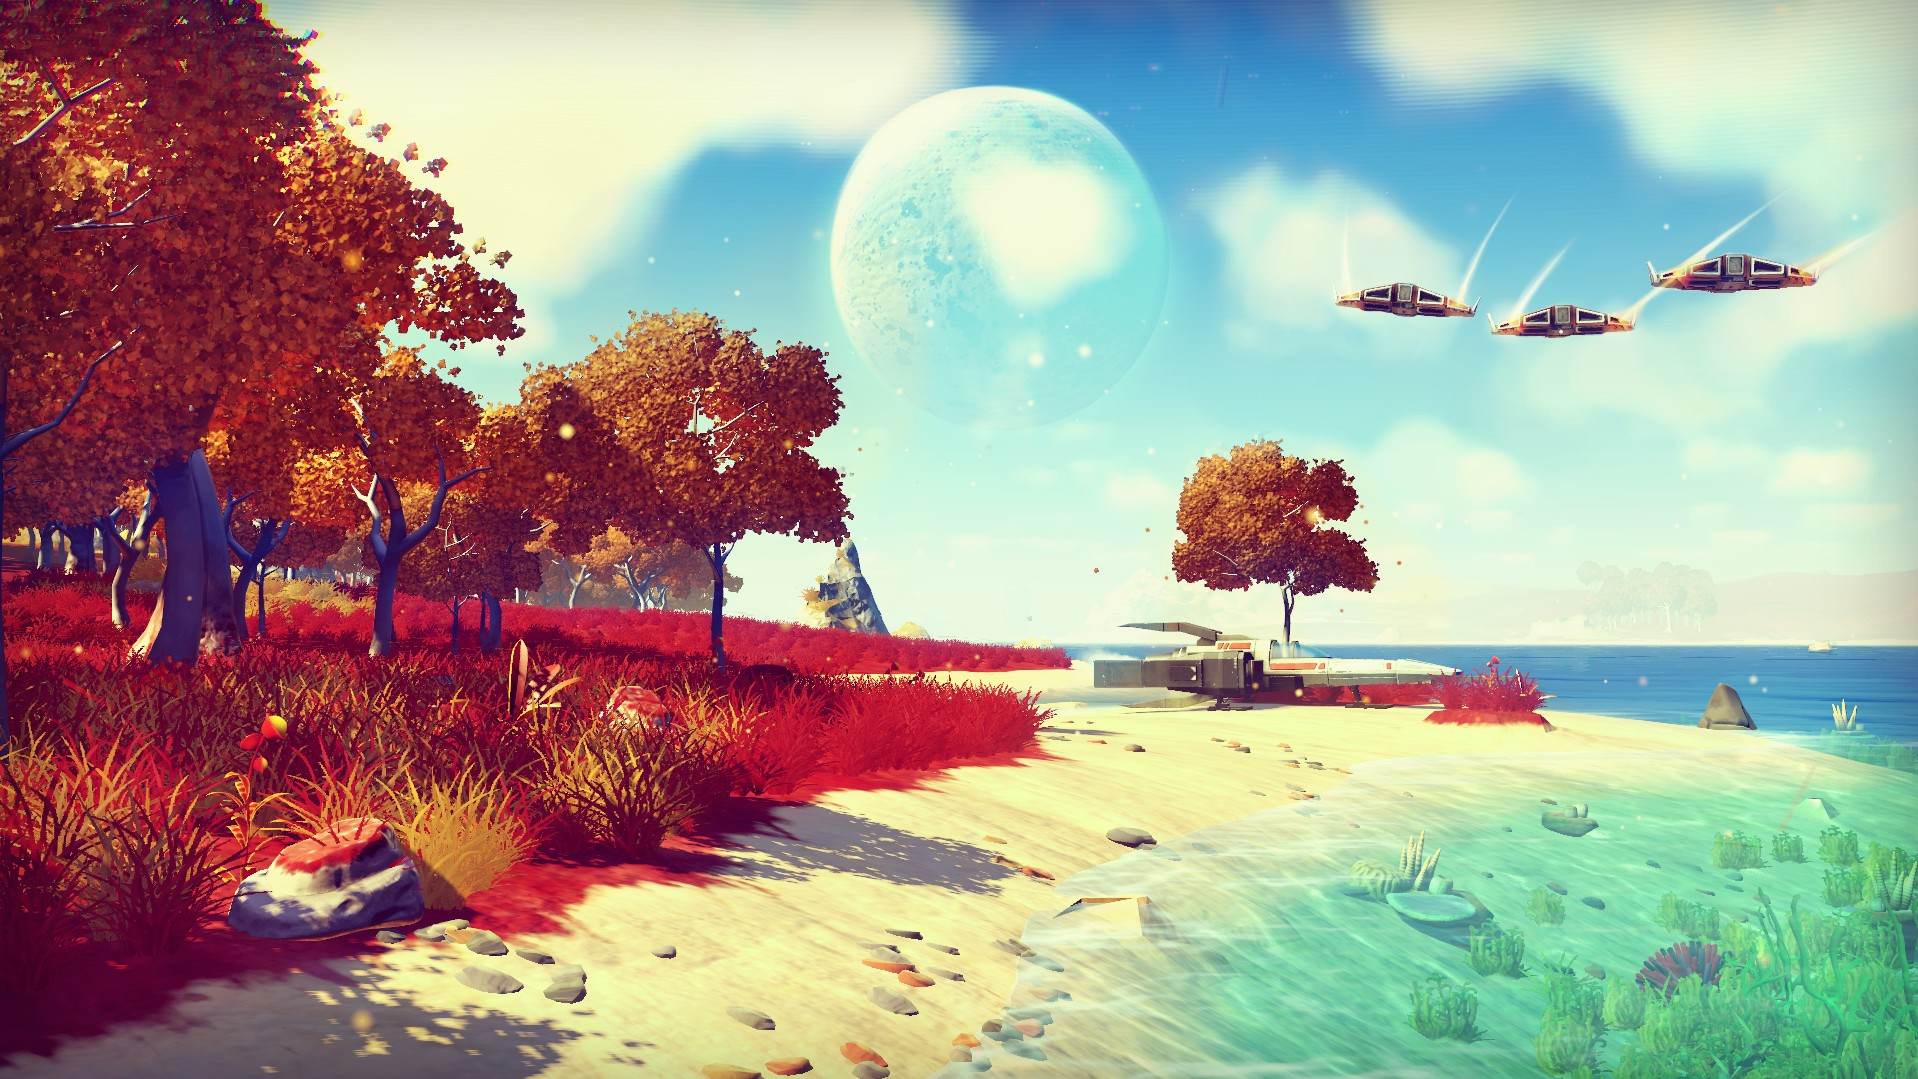 'No Man's Sky' Is Like 18 Quintillion Bowls of Oatmeal